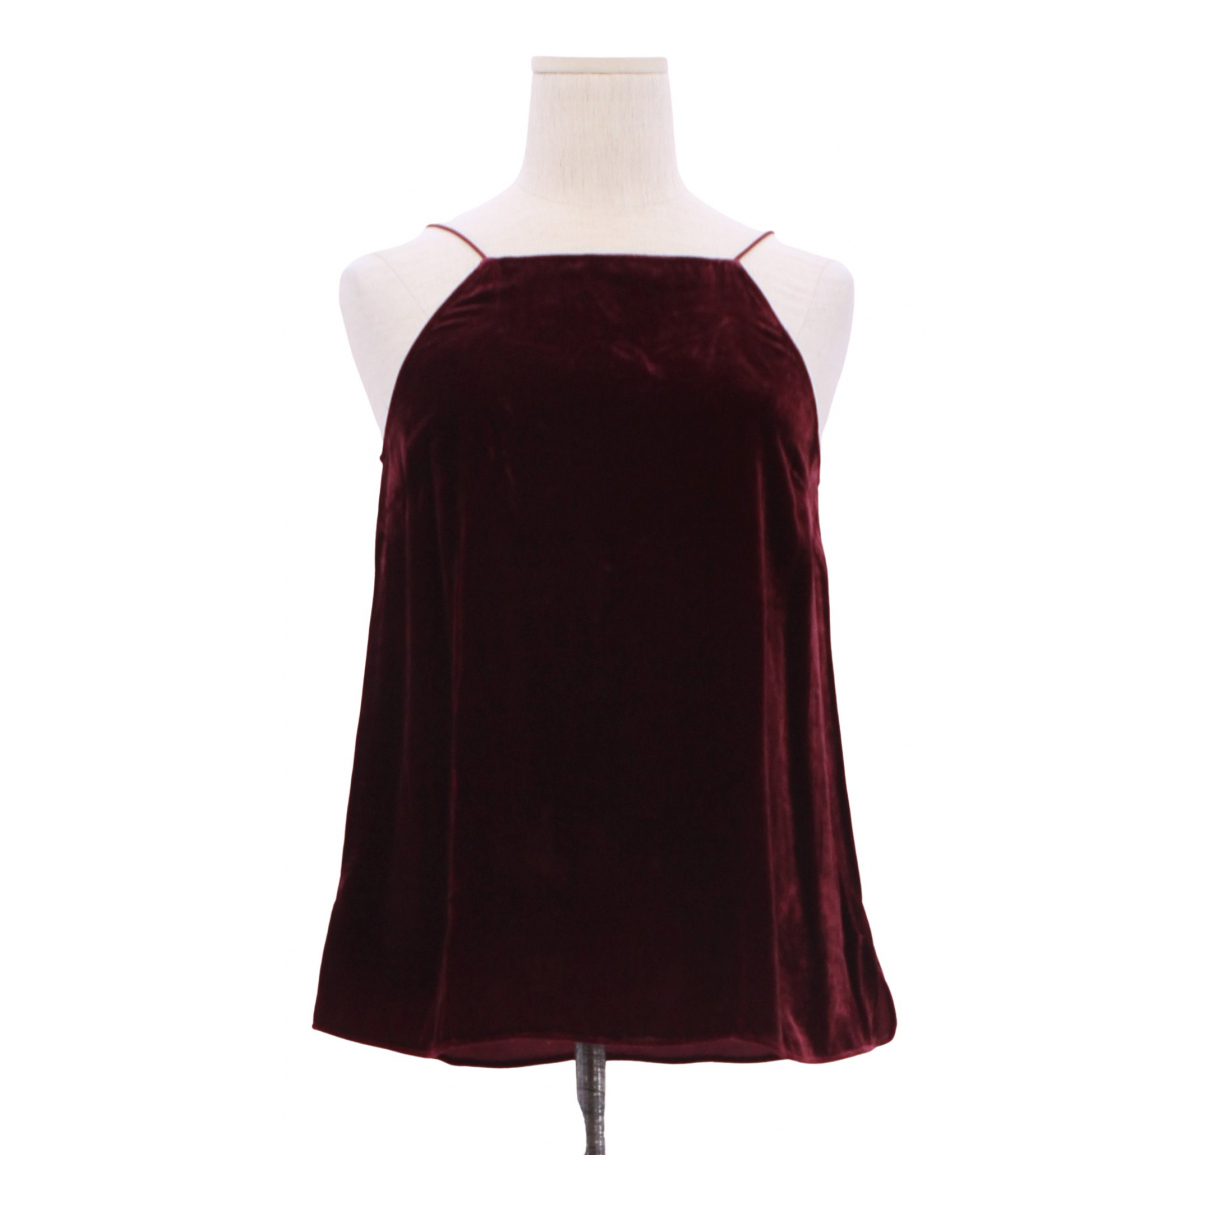 Non Signé / Unsigned \N Burgundy  top for Women XS International